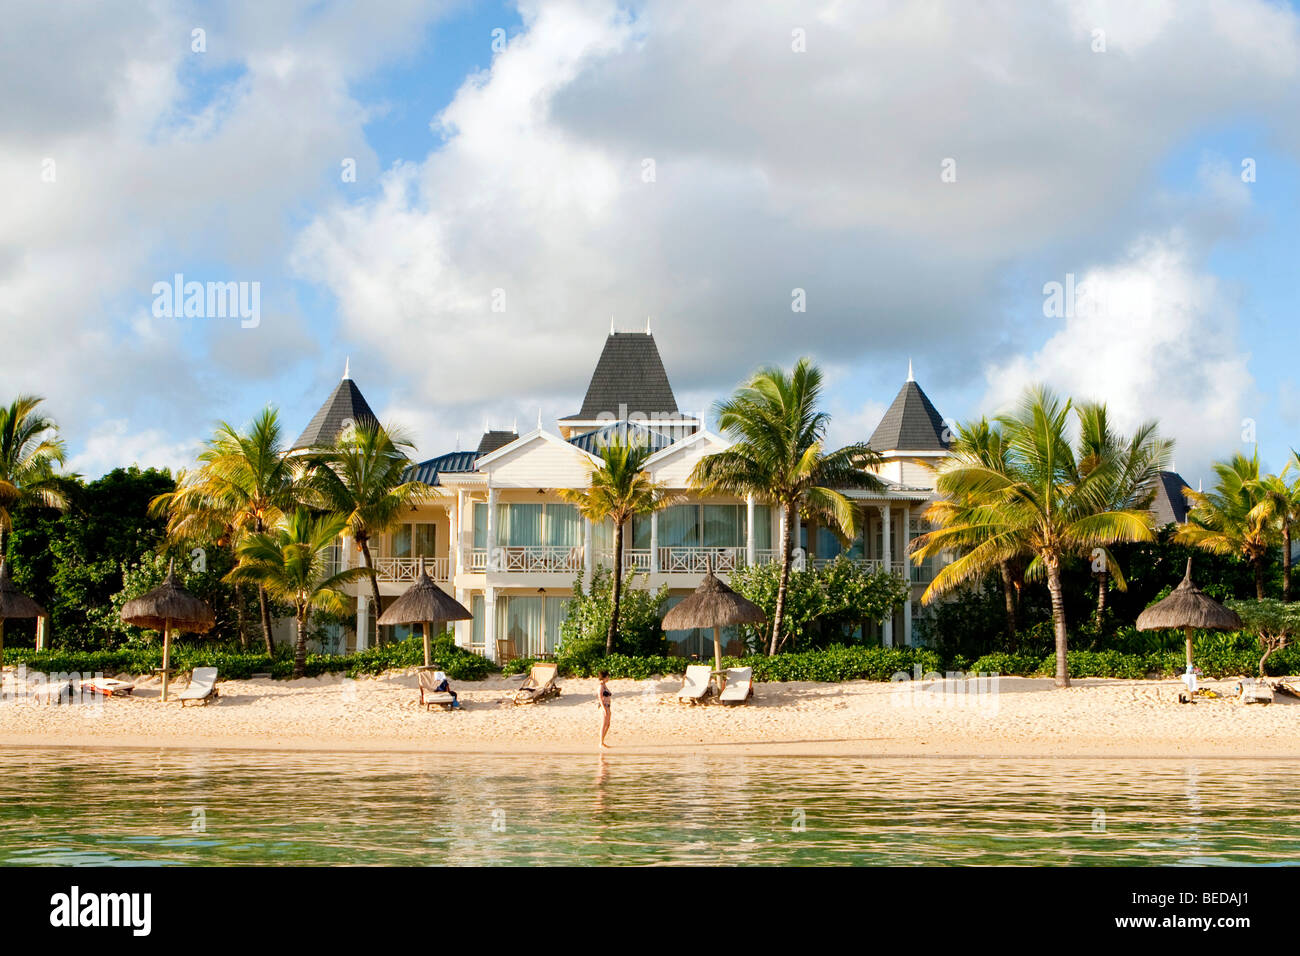 Hotel Le Telfair, Bel Ombre, Mauritius - Stock Image